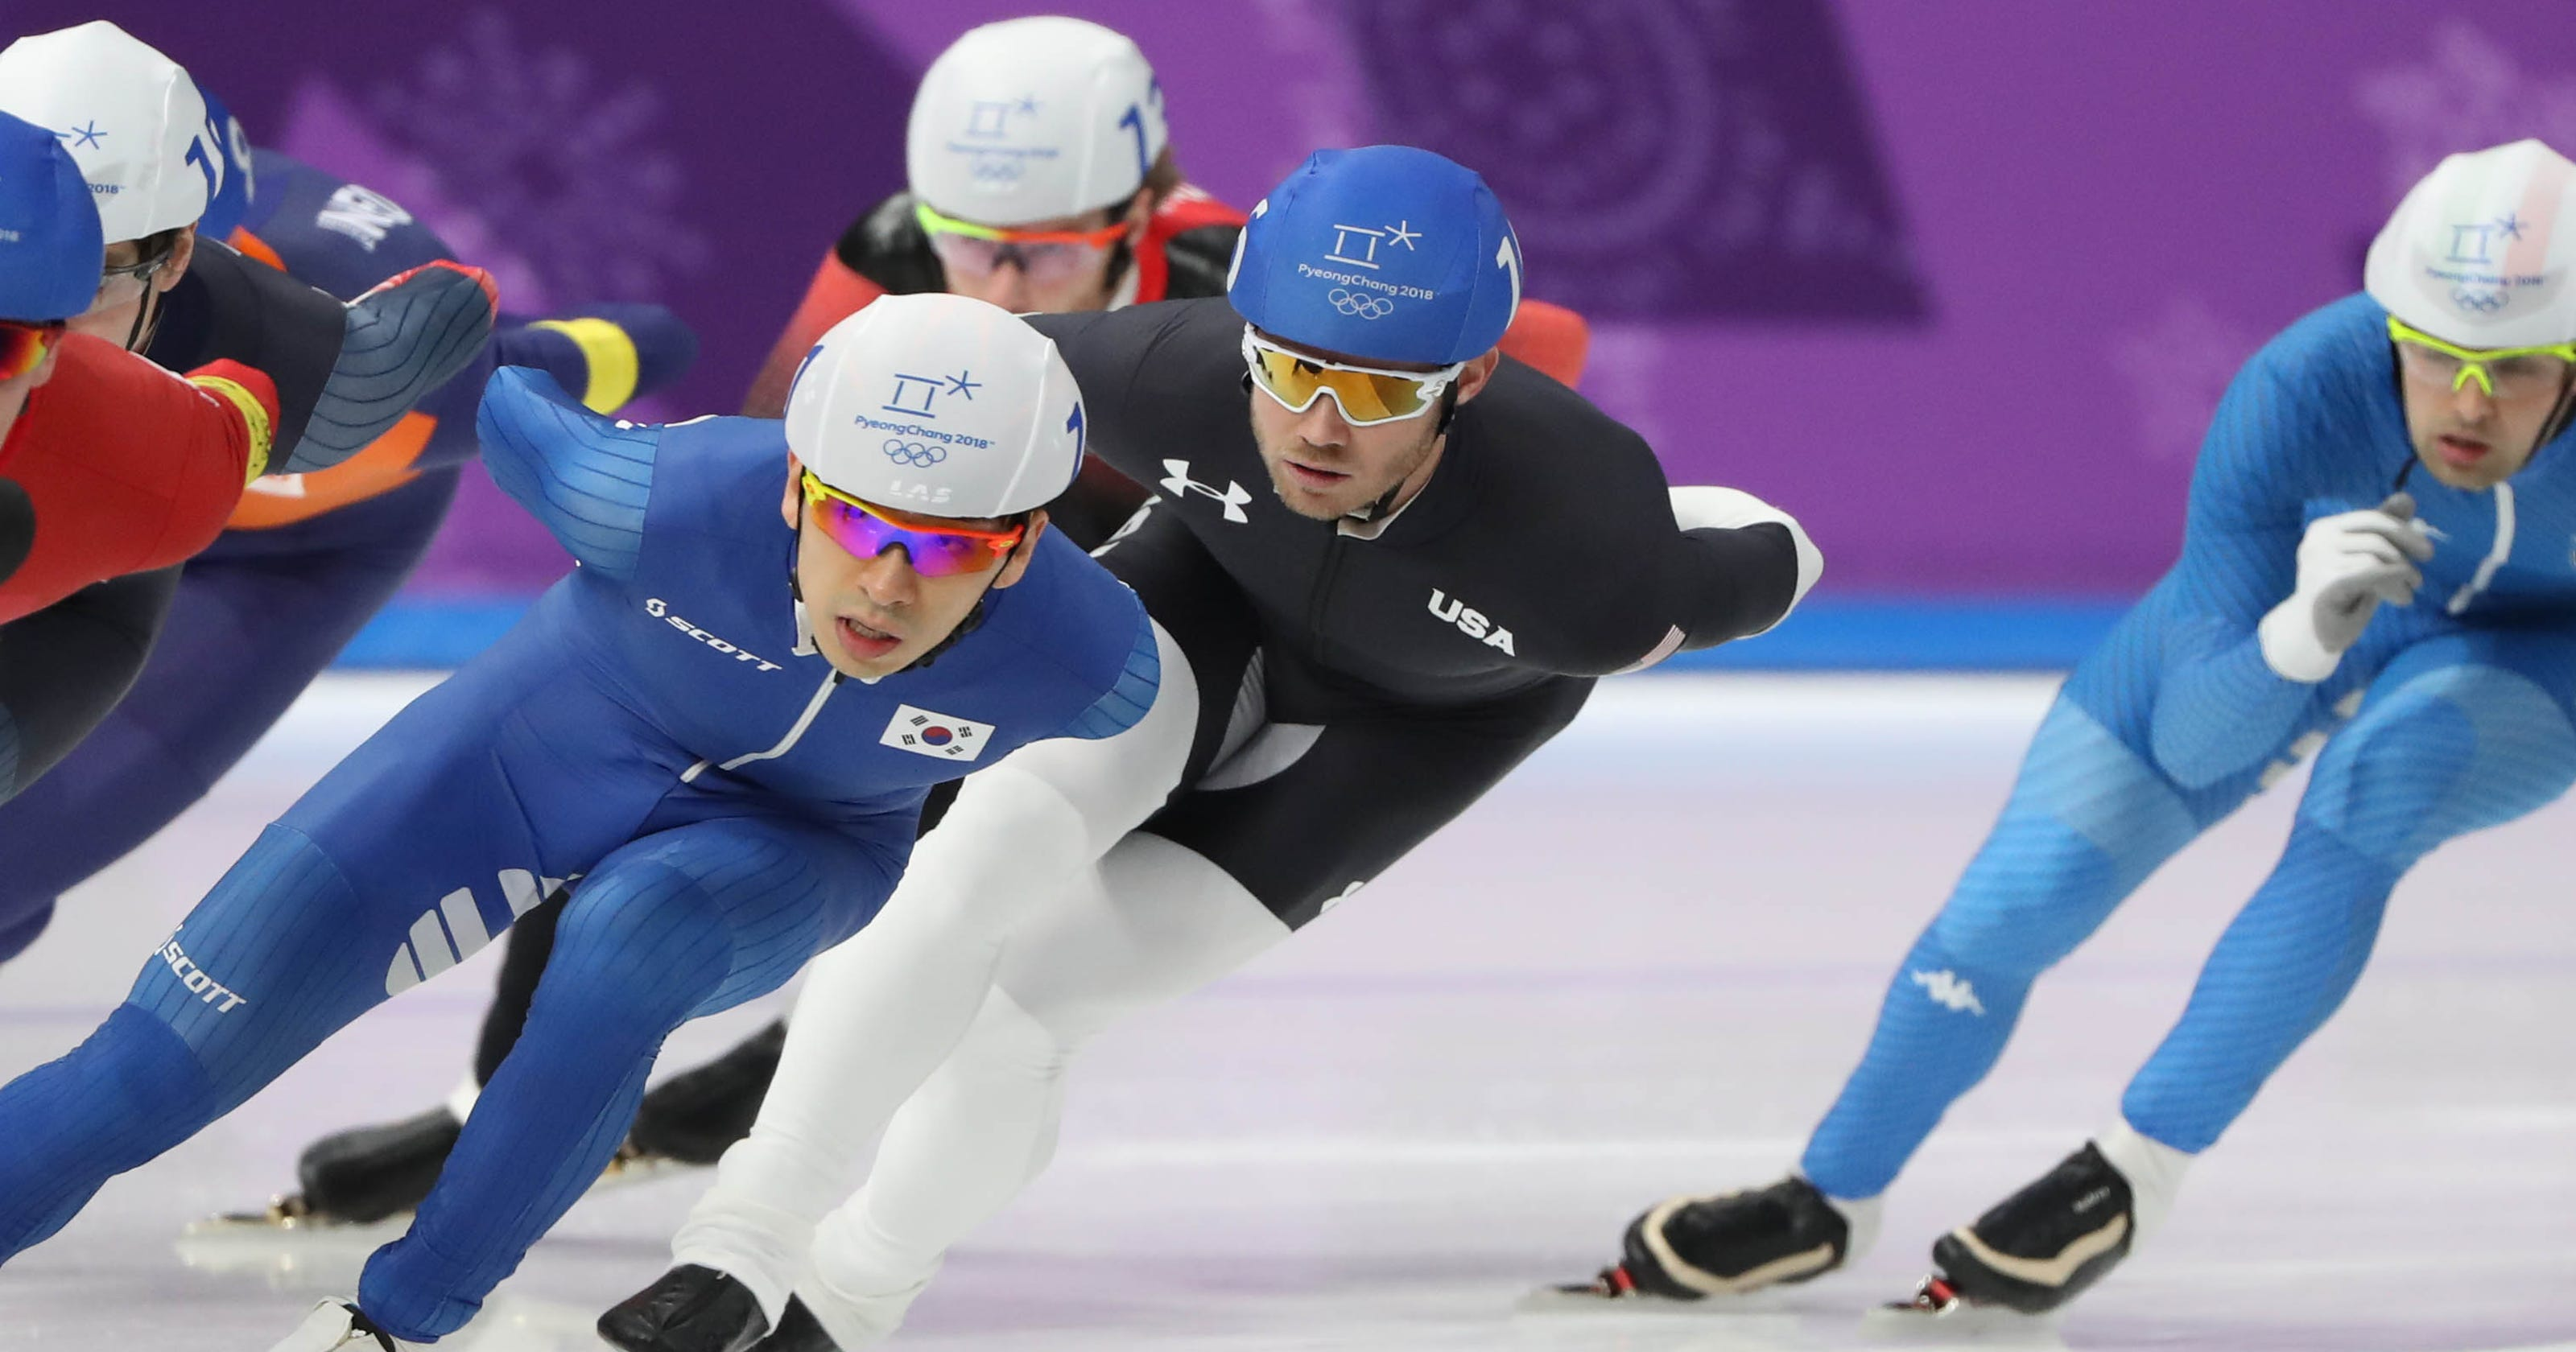 4906f5dcb06 U.S. speedskaters see positives in mass start showing